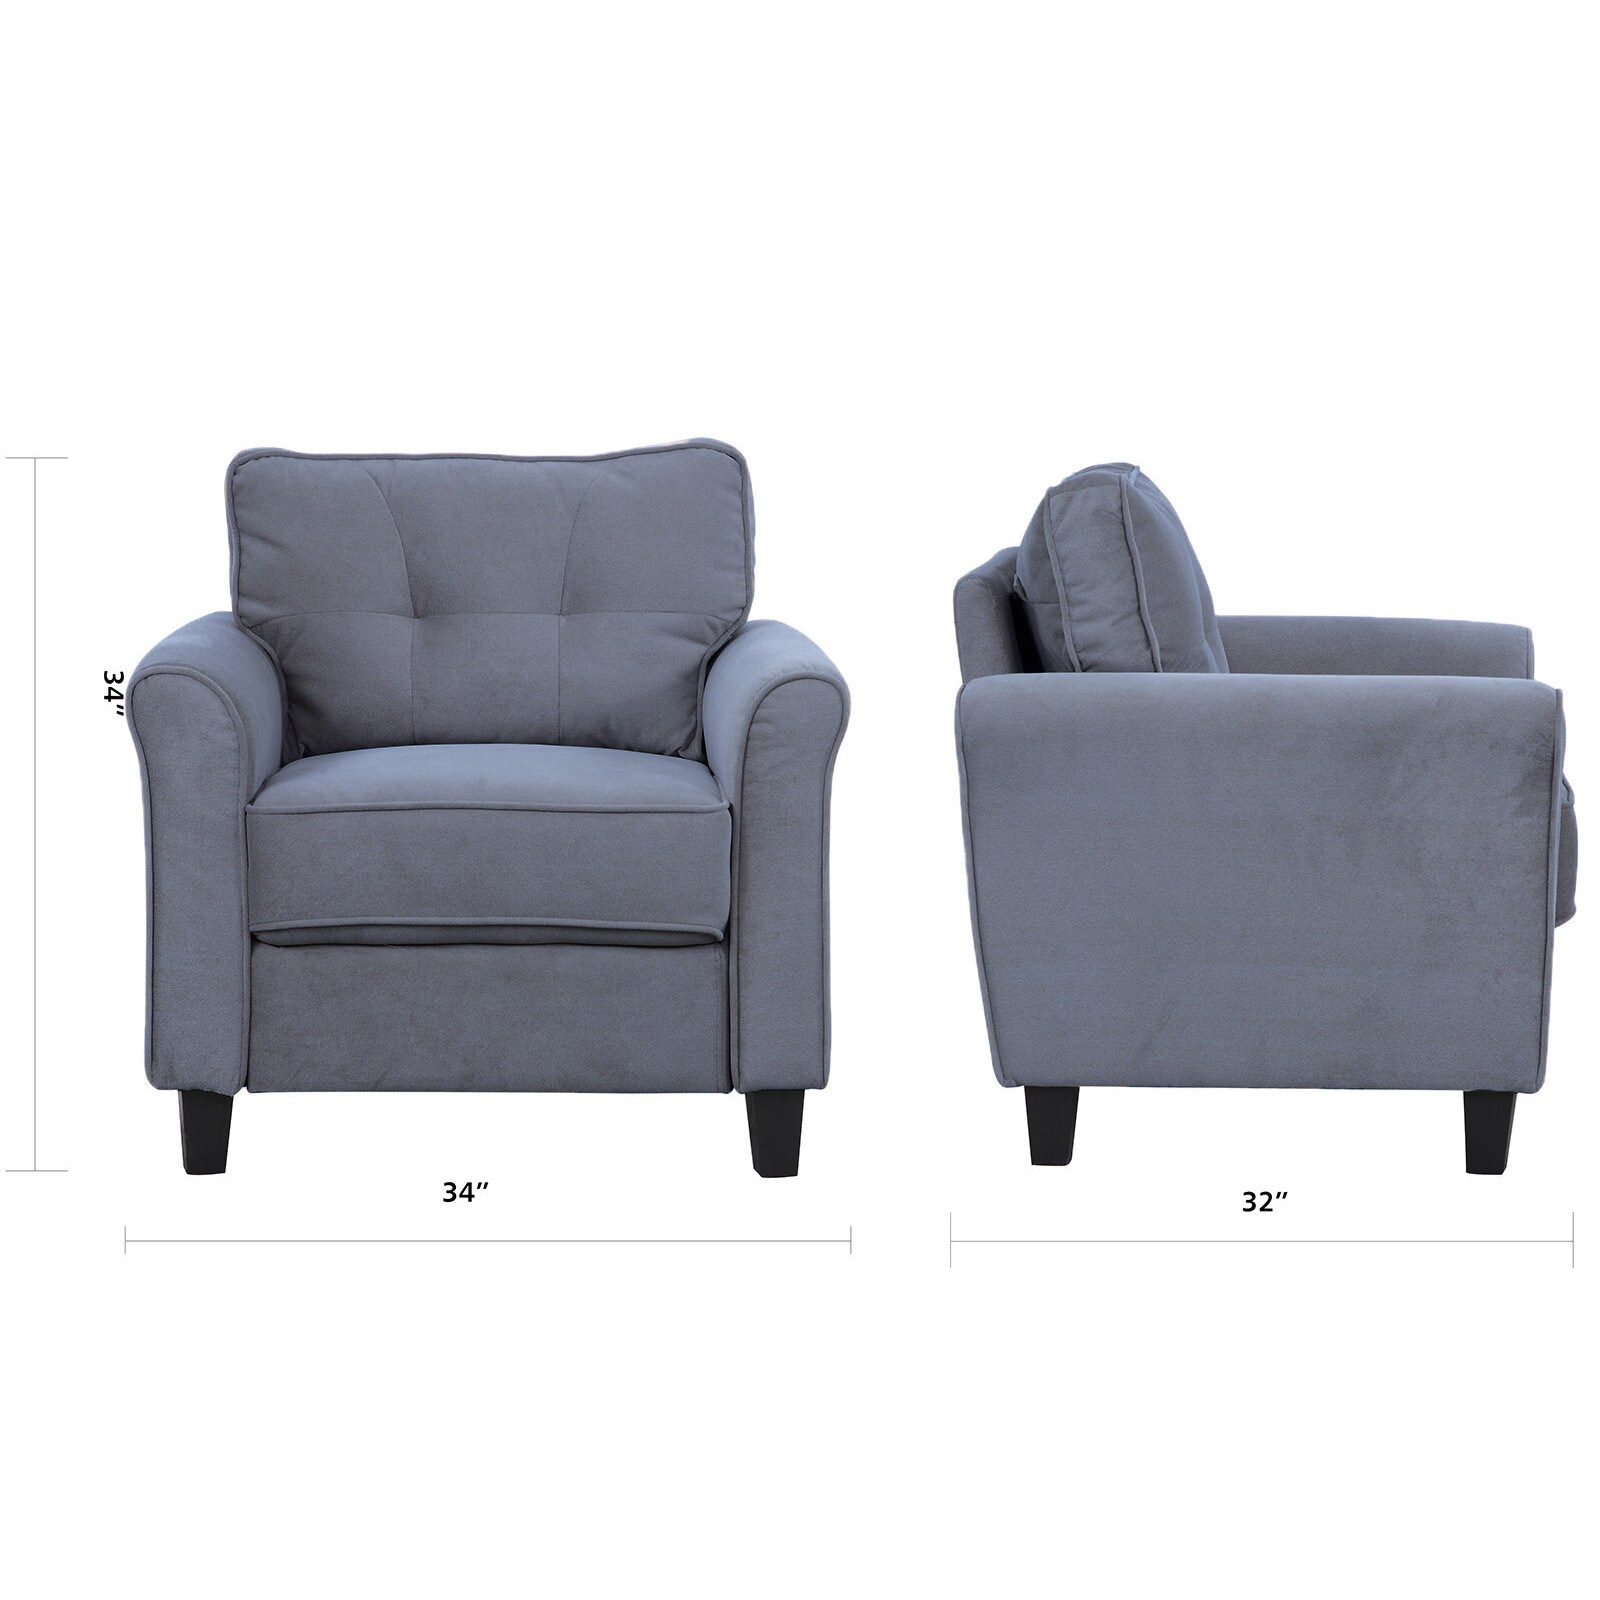 Shop Classic Ultra Comfortable Linen Fabric Living Room Accent Chair - Free Shipping Today - Overstock.com - 13767967  sc 1 st  Overstock.com & Shop Classic Ultra Comfortable Linen Fabric Living Room Accent Chair ...